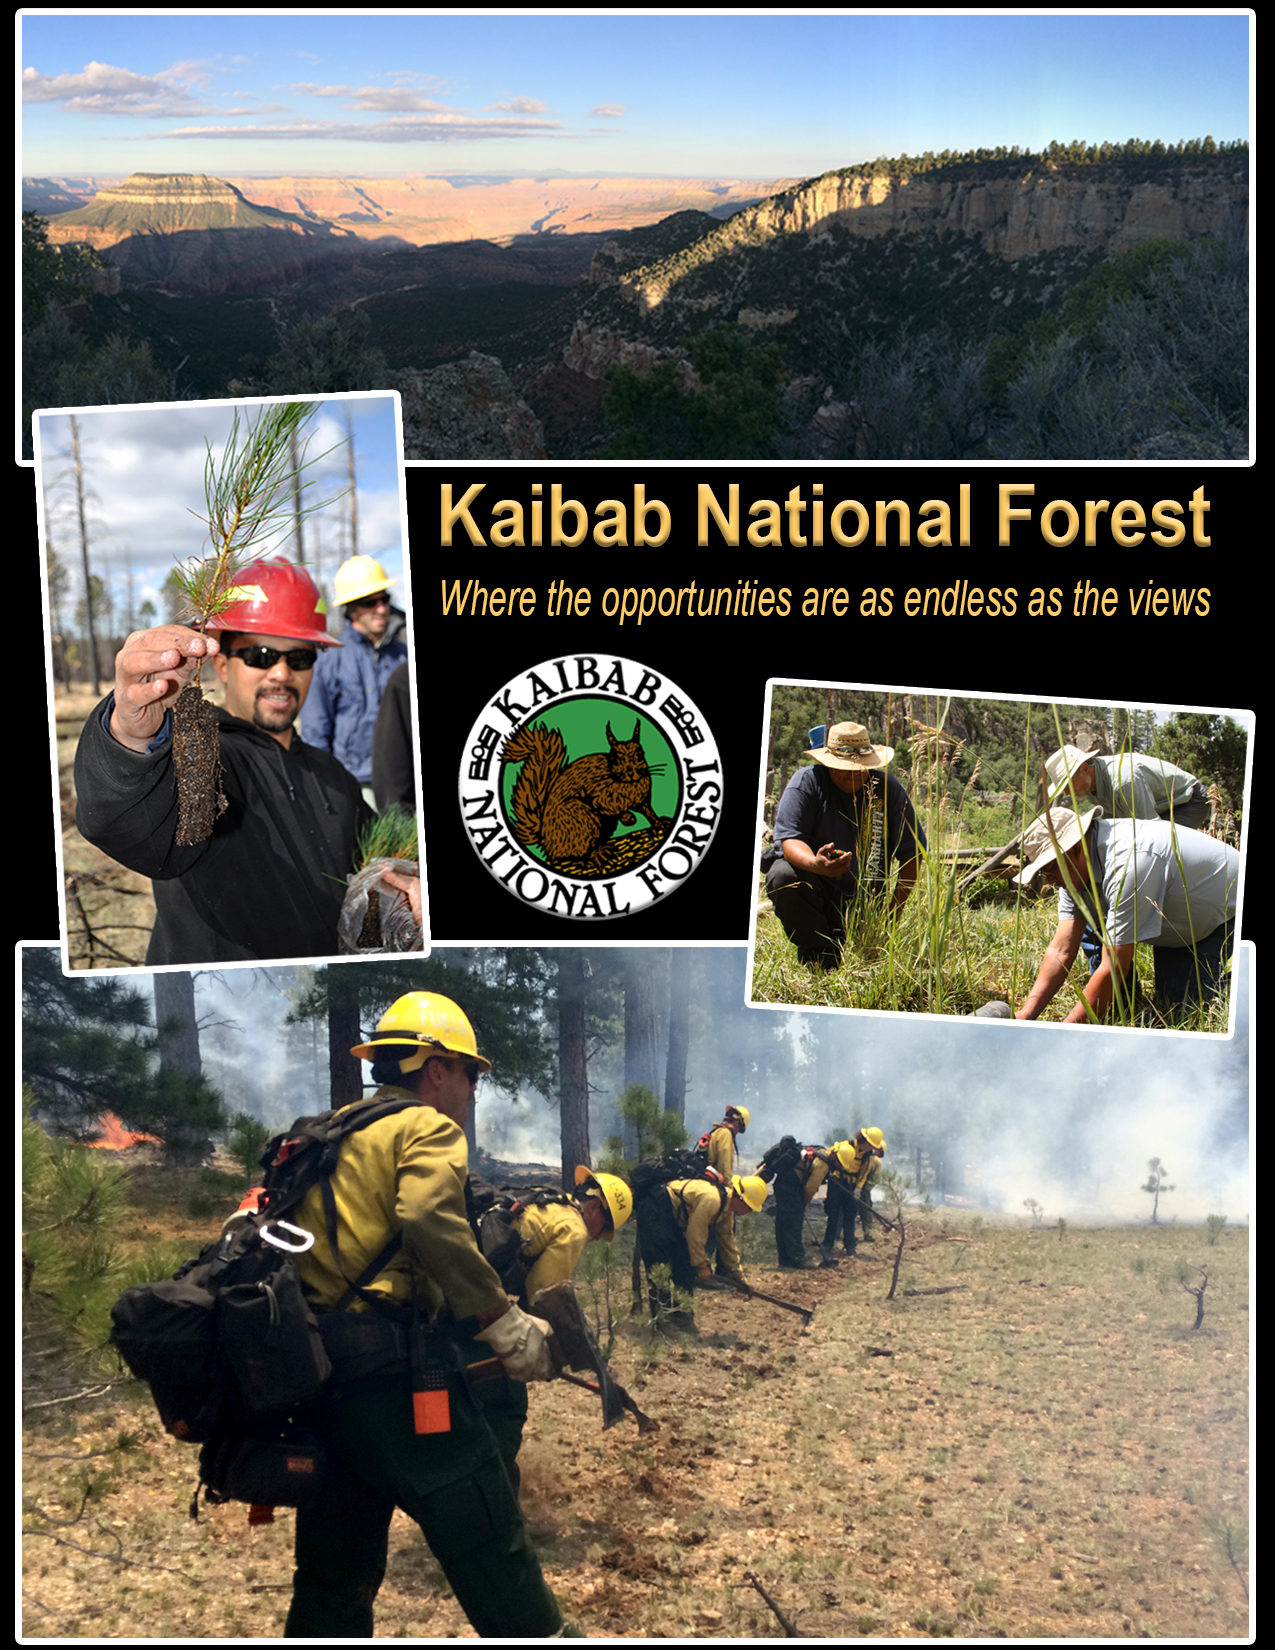 Flyer courtesy of Kaibab National Forest, St. George News